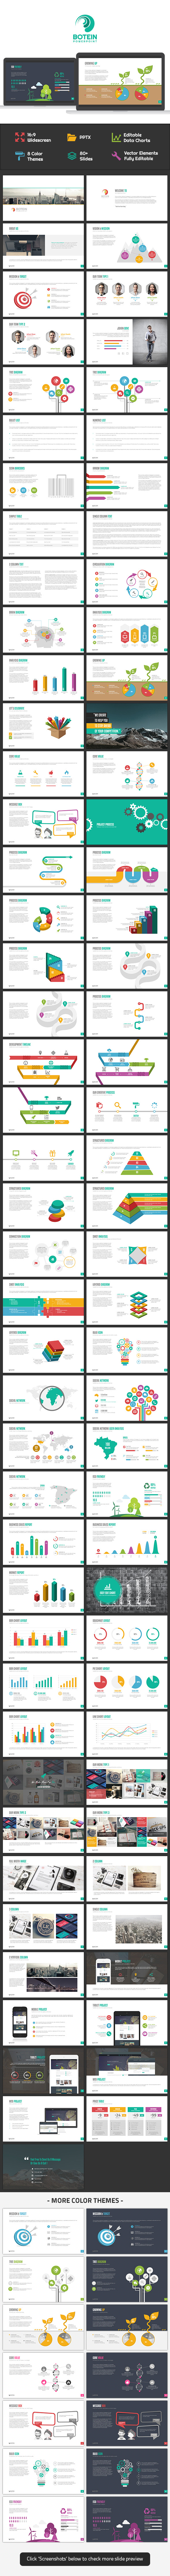 Botein Powerpoint Template